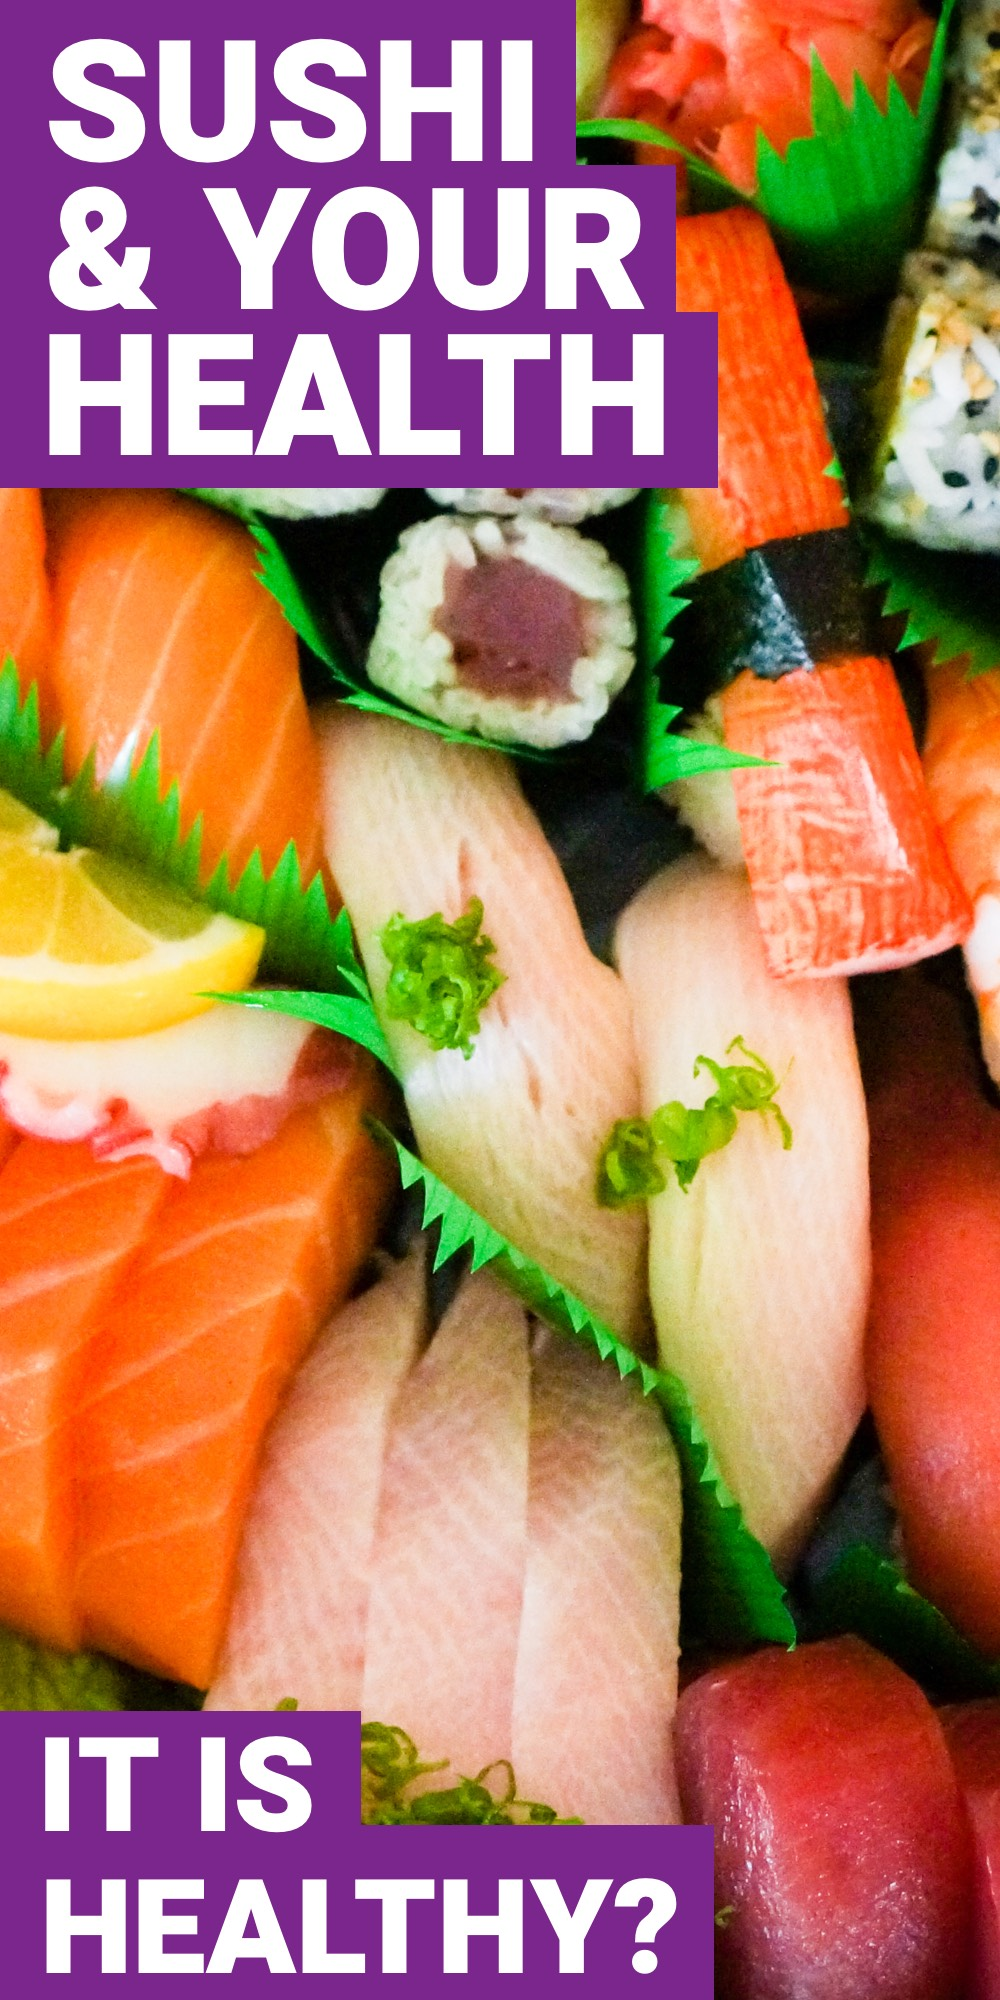 How healthy is sushi for you? Here you can find out how to always make sushi healthy when you eat it.